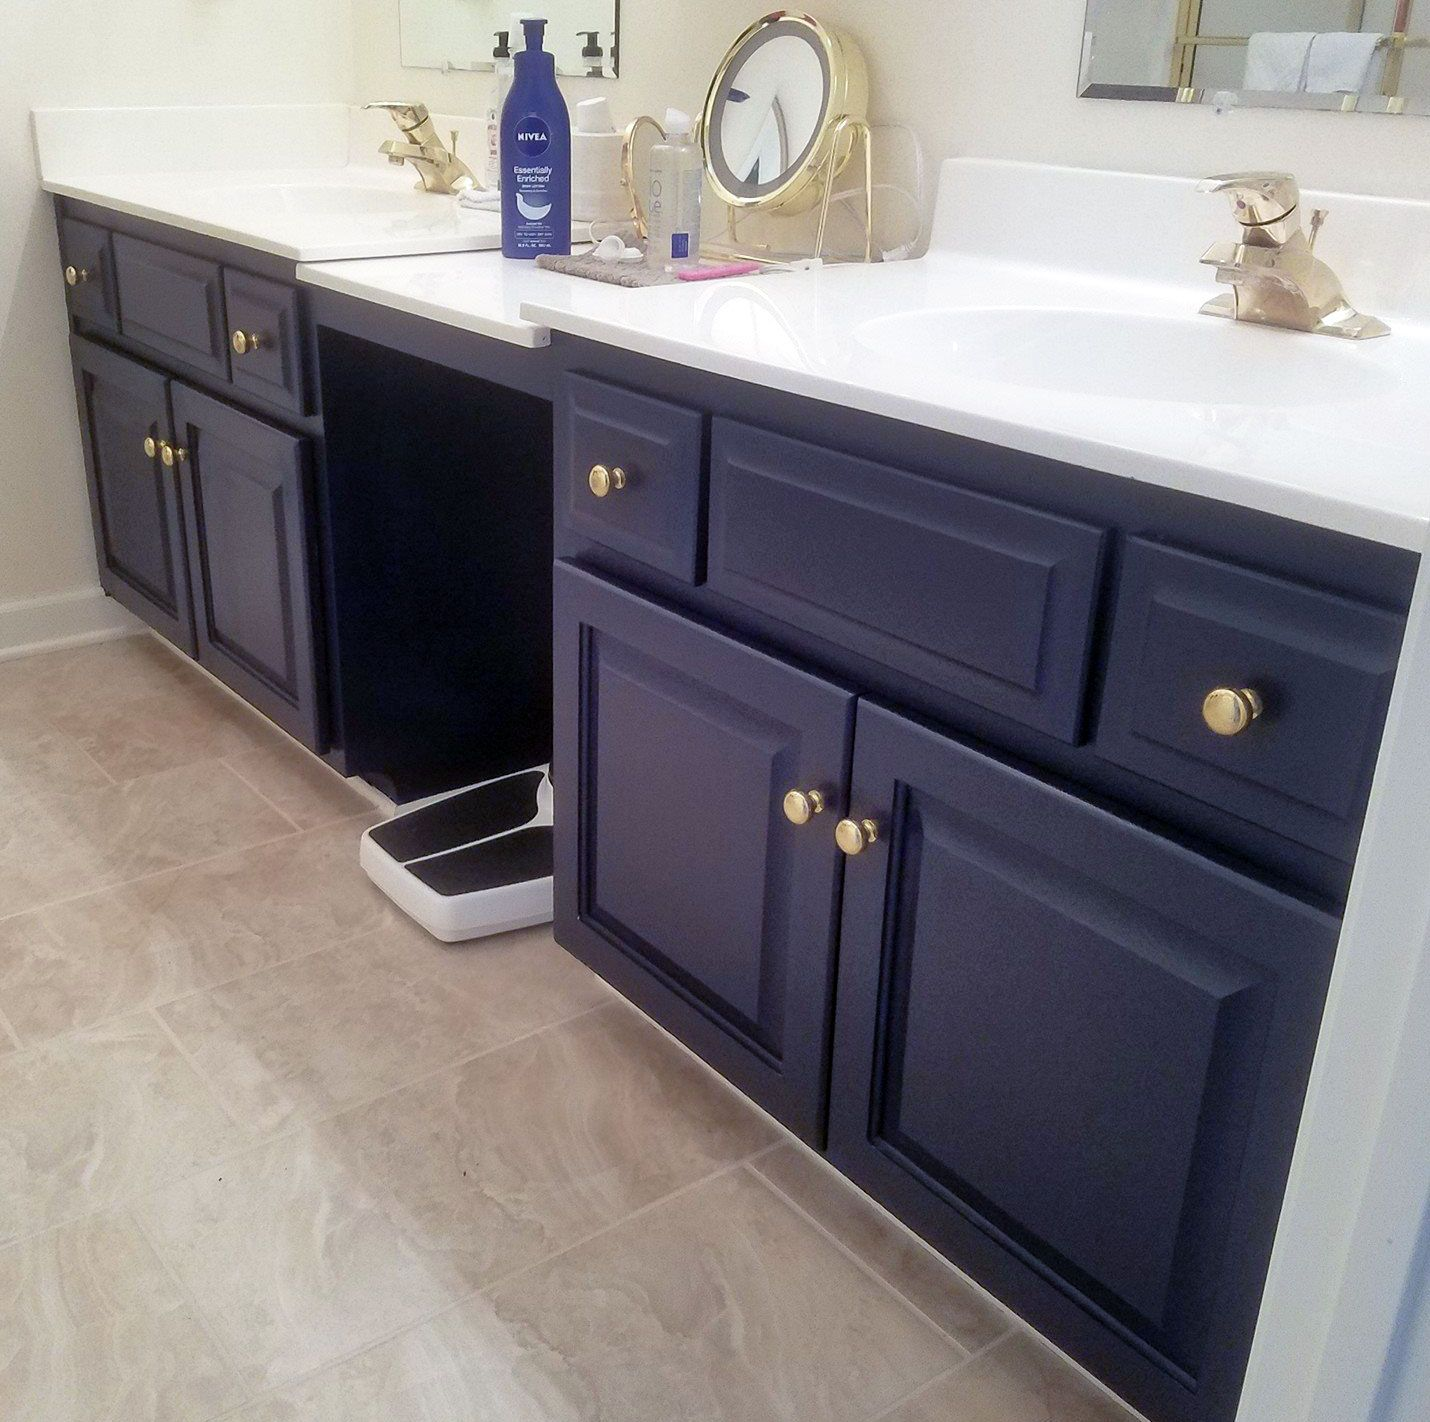 1Shabby Chic Kitchen And Bath Painting Beautified This Bathroom Vanity With  General Finishes Coastal Blue Milk